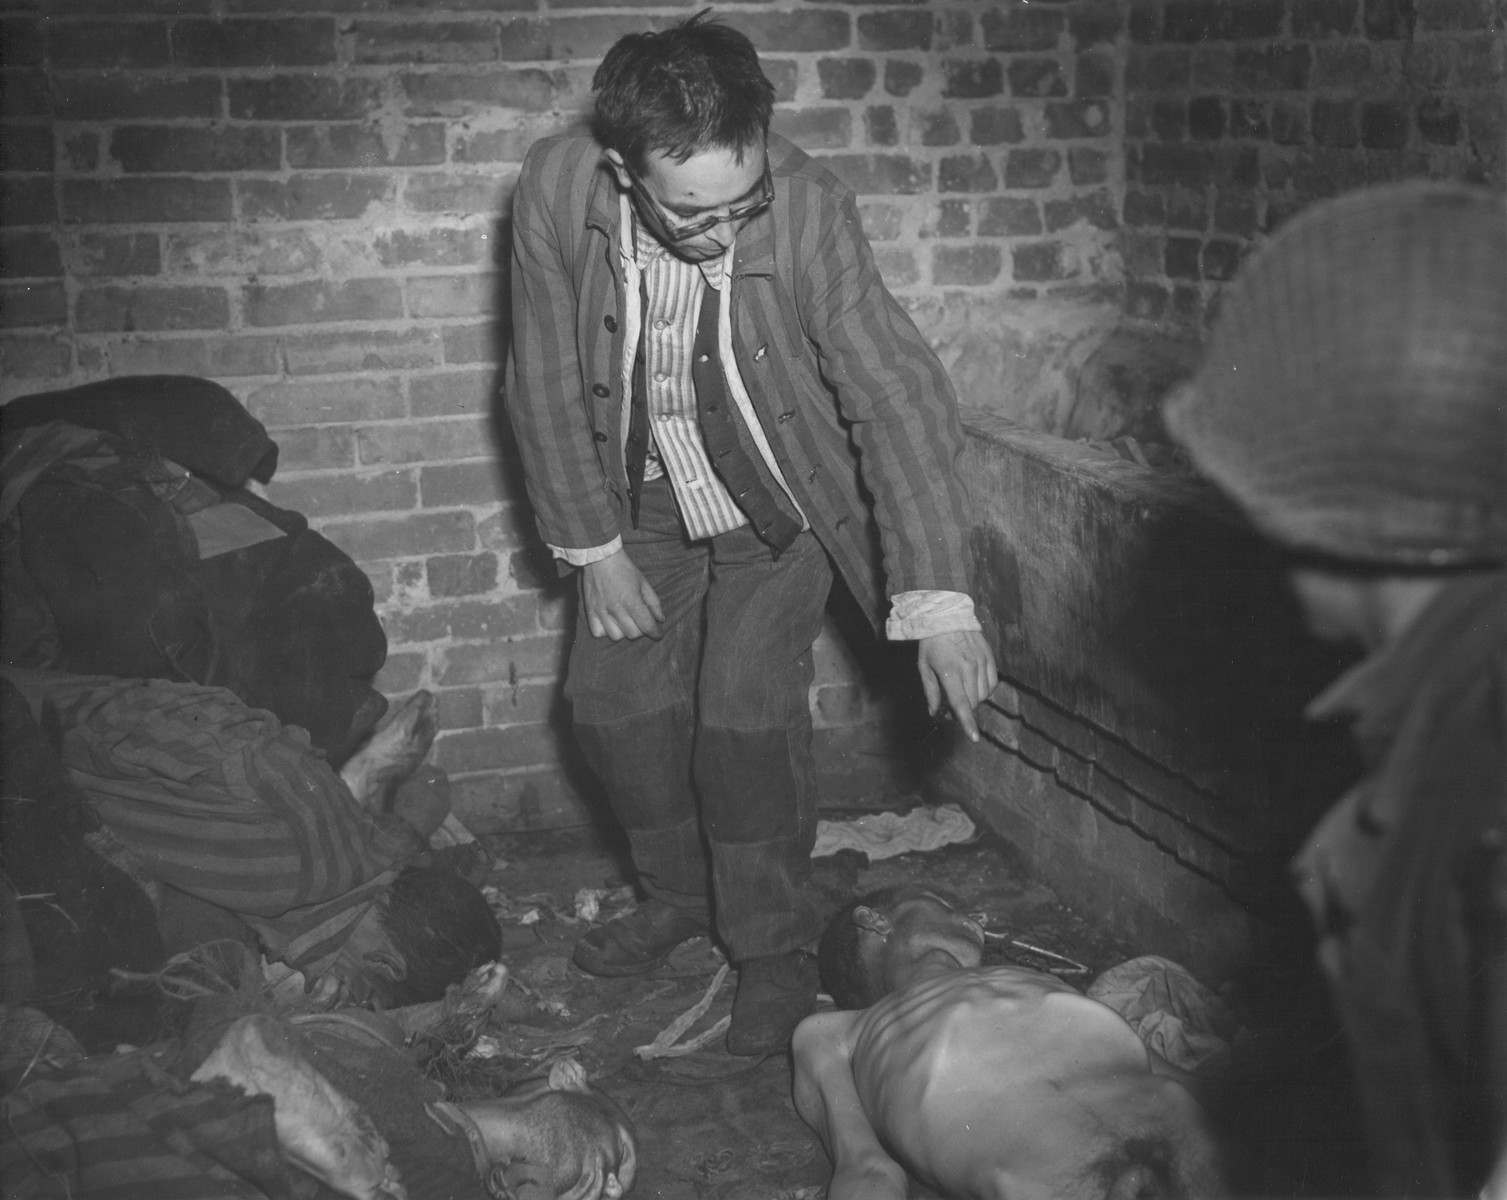 David Rousset, a liberated prisoner who is acting as a guide for an American soldier, points out the emaciated corpse of a prisoner lying on the floor of a brick structure in the newly liberated Woebbelin concentration camp.